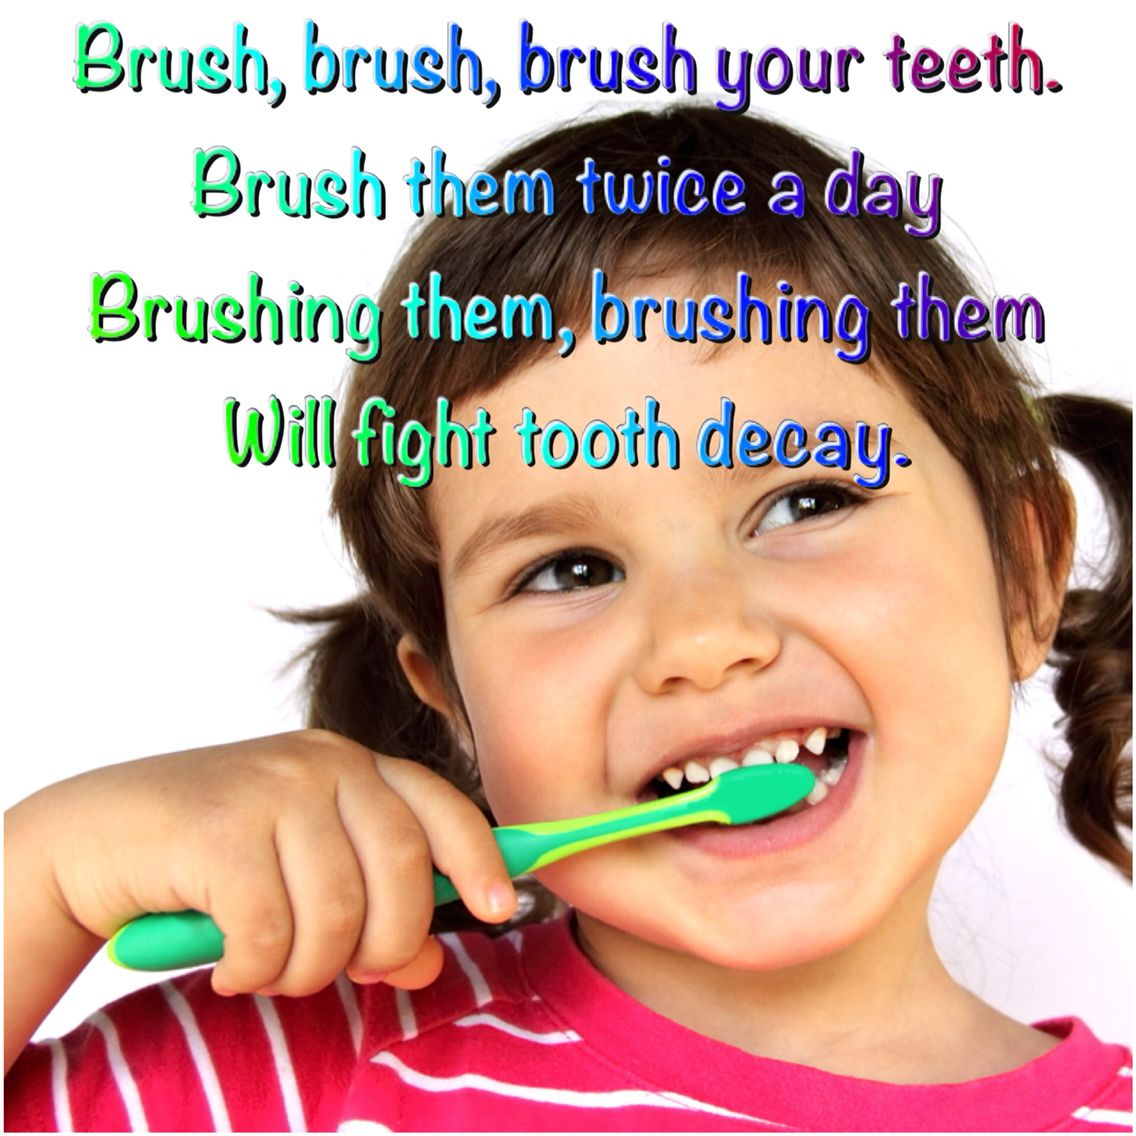 A song about brushing your teeth. It's the tune of Row